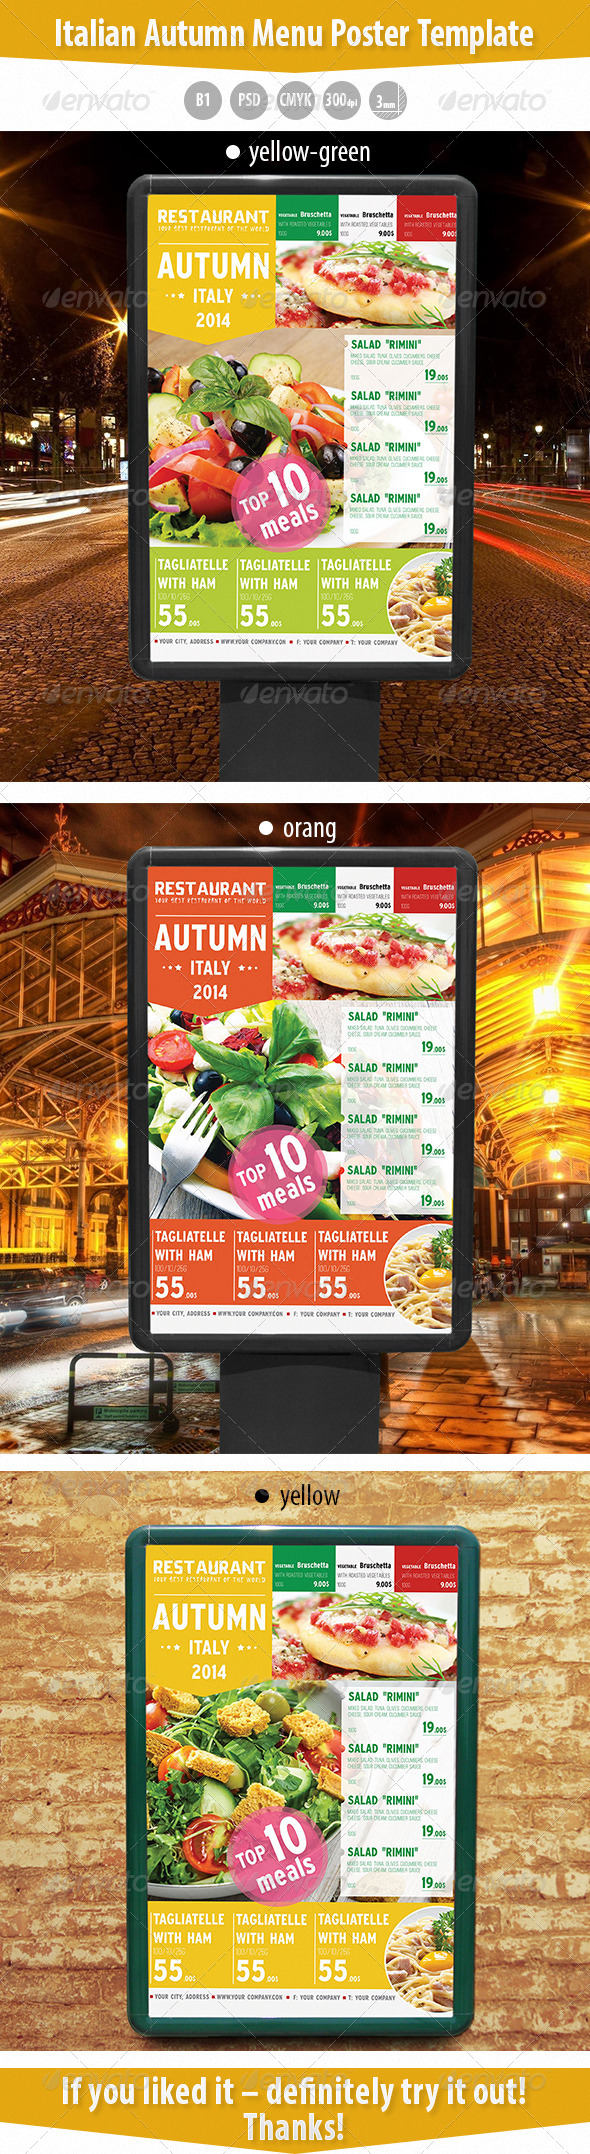 GraphicRiver Italian Autumn Menu Poster Template 8663729